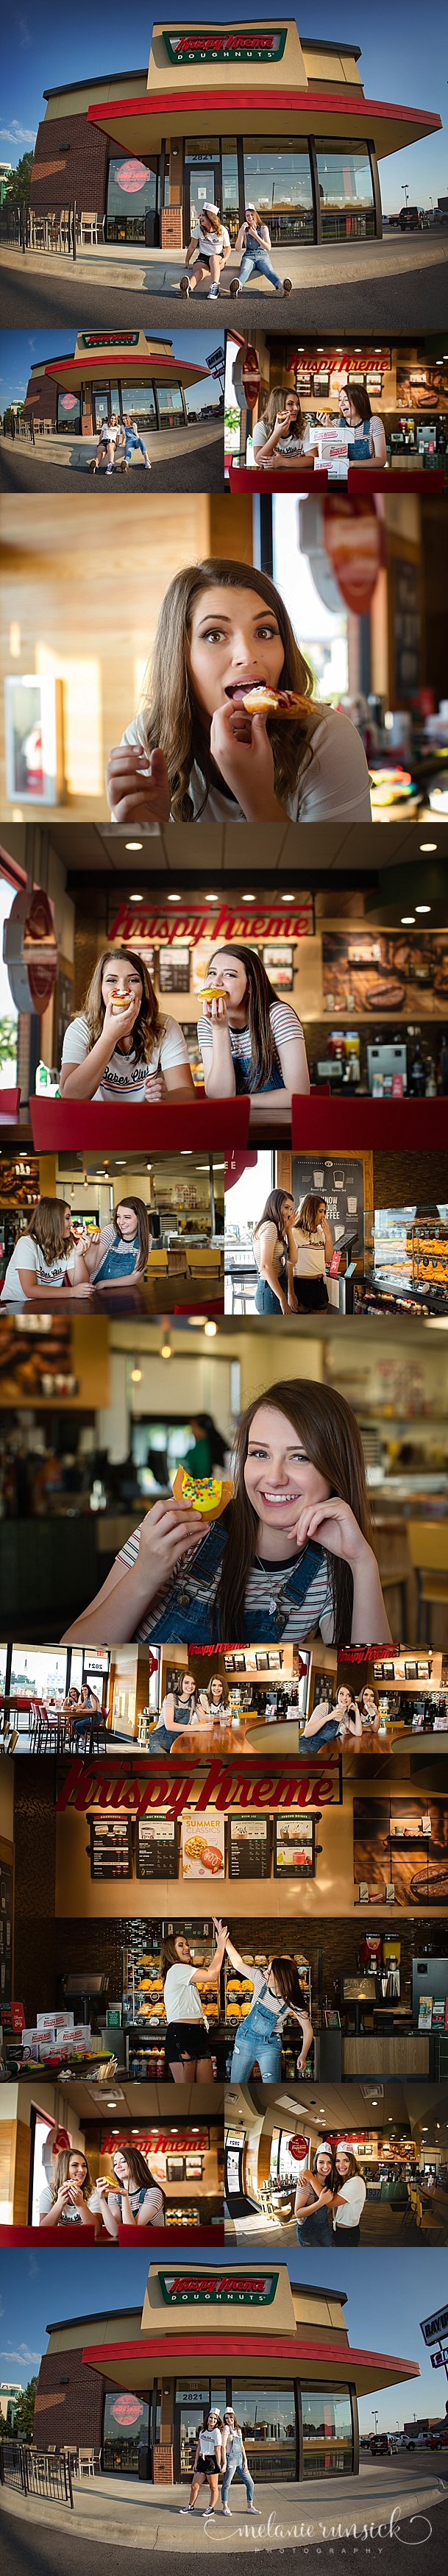 Krispy Kreme Jonesboro AR Melanie Runsick Photography Best Friend Senior Session Senior Portrait Photographer